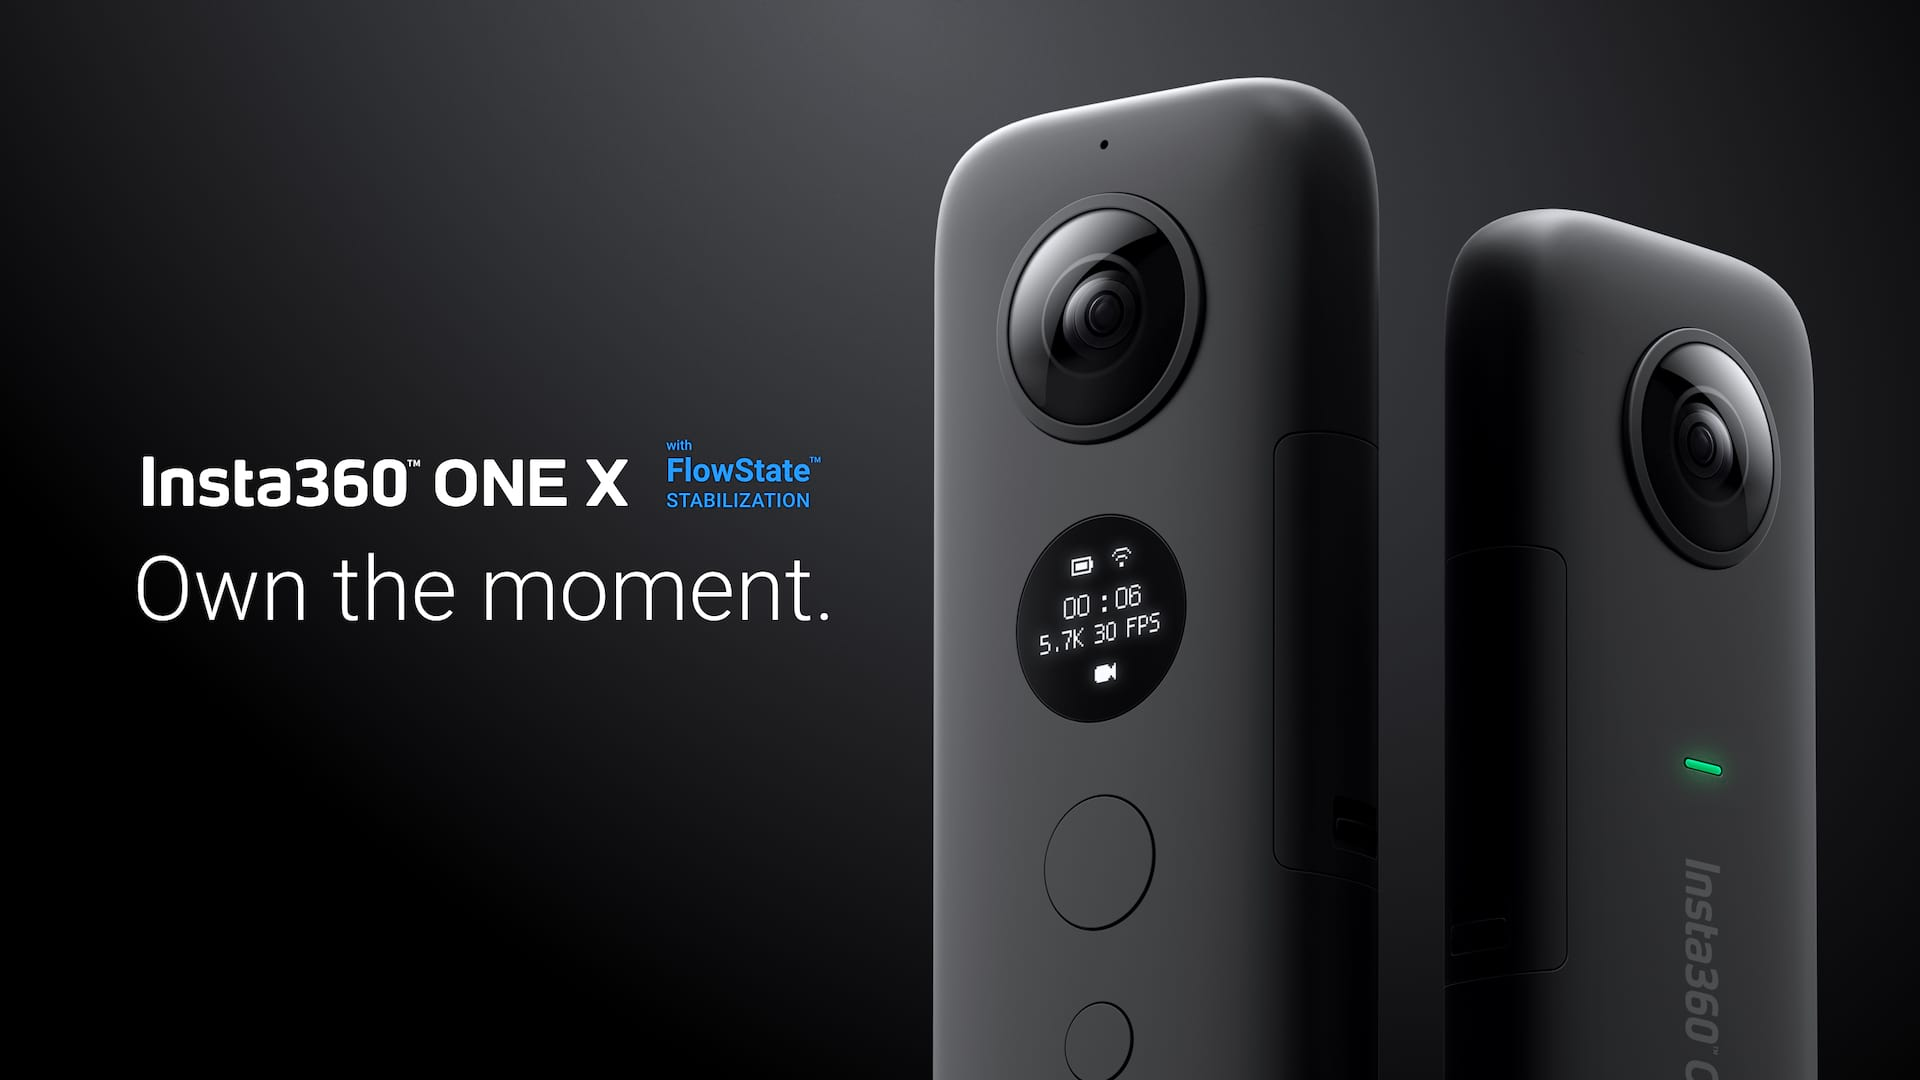 Insta360 One X Camera - The End To Drones, Gimbals And ...